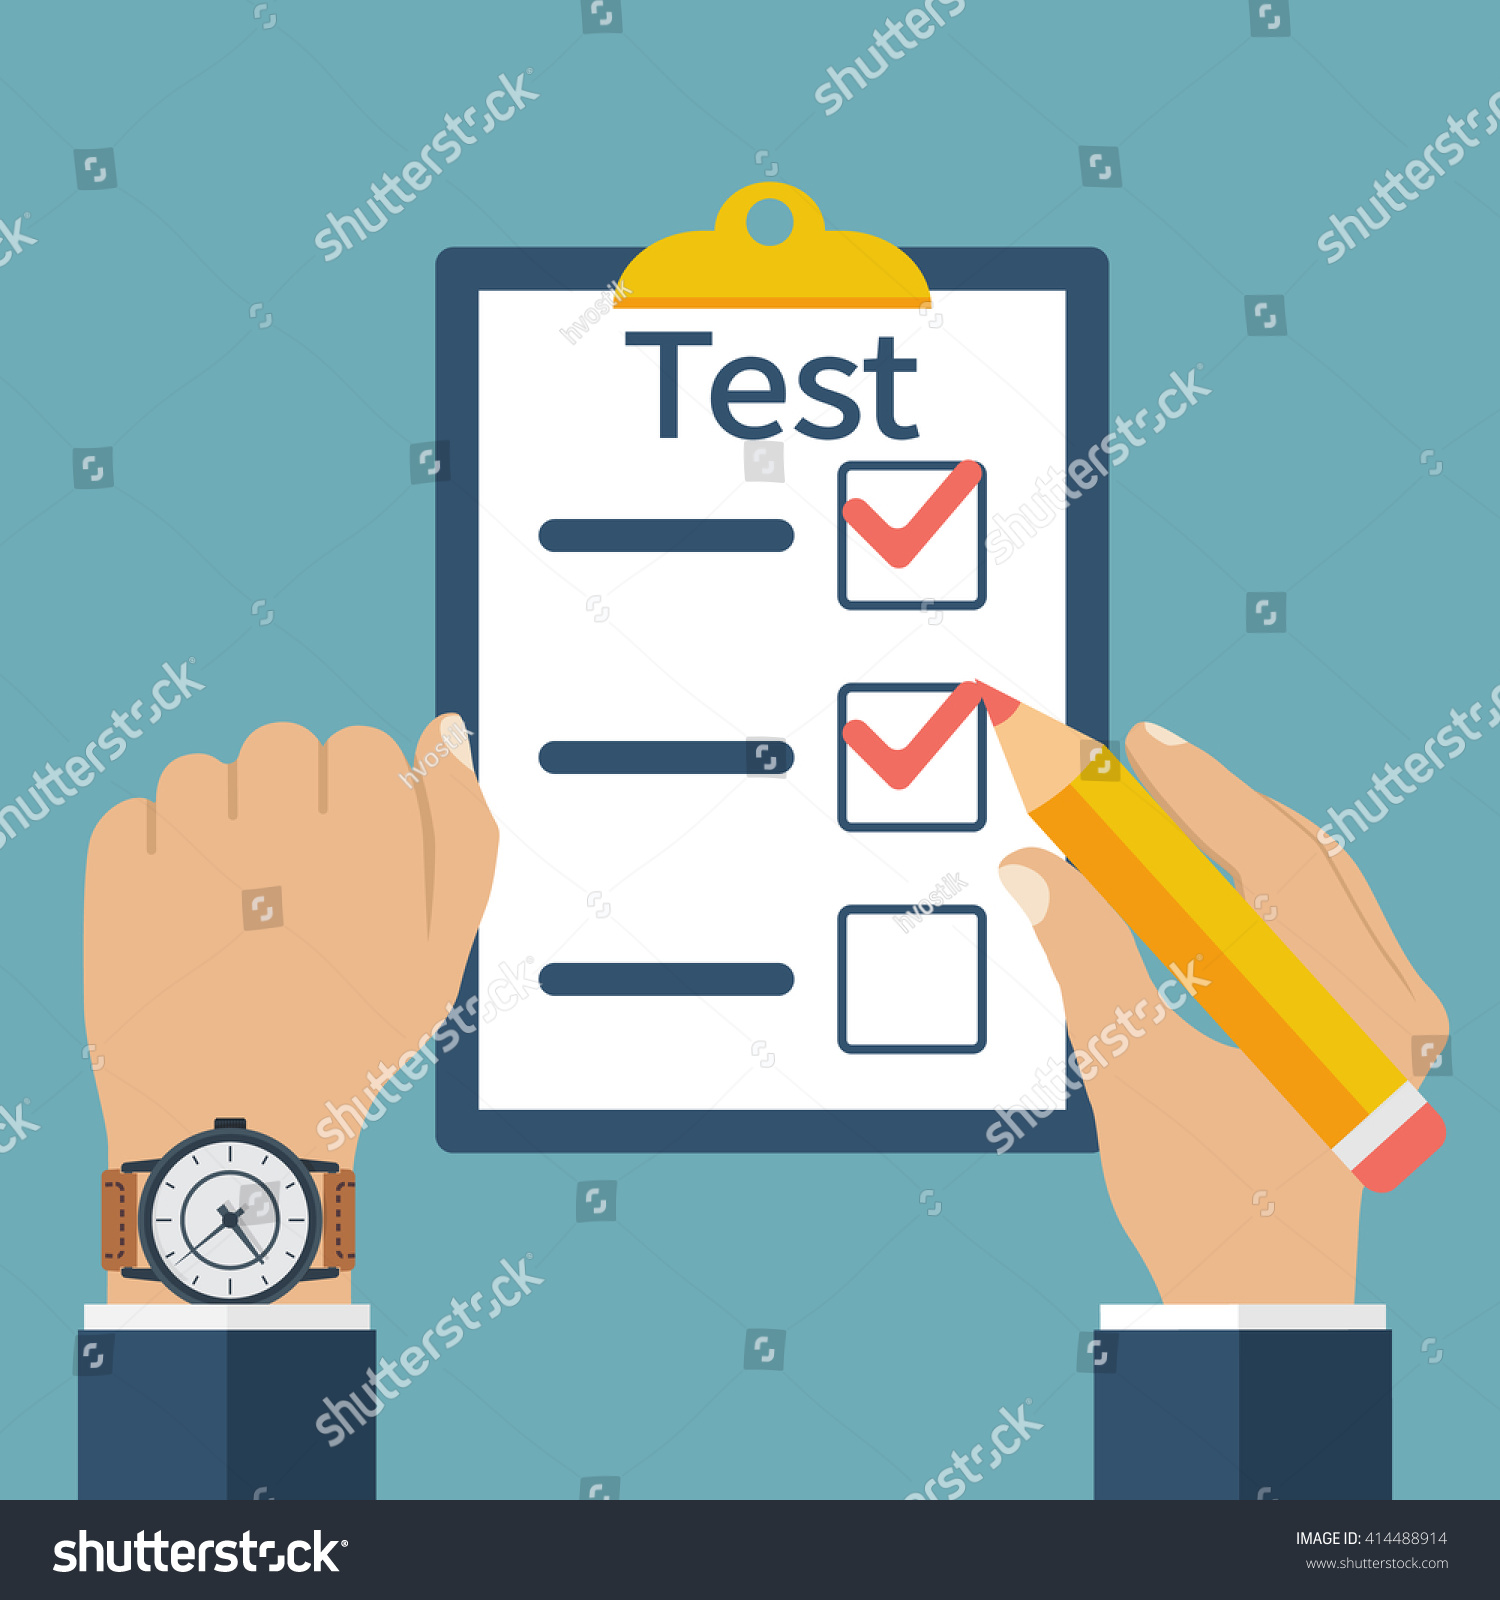 Hands of man with clock and pencil concept test at time Vector illustration flat design competitive basis Filling writing tests Exam on time Checklist survey Filling out forms